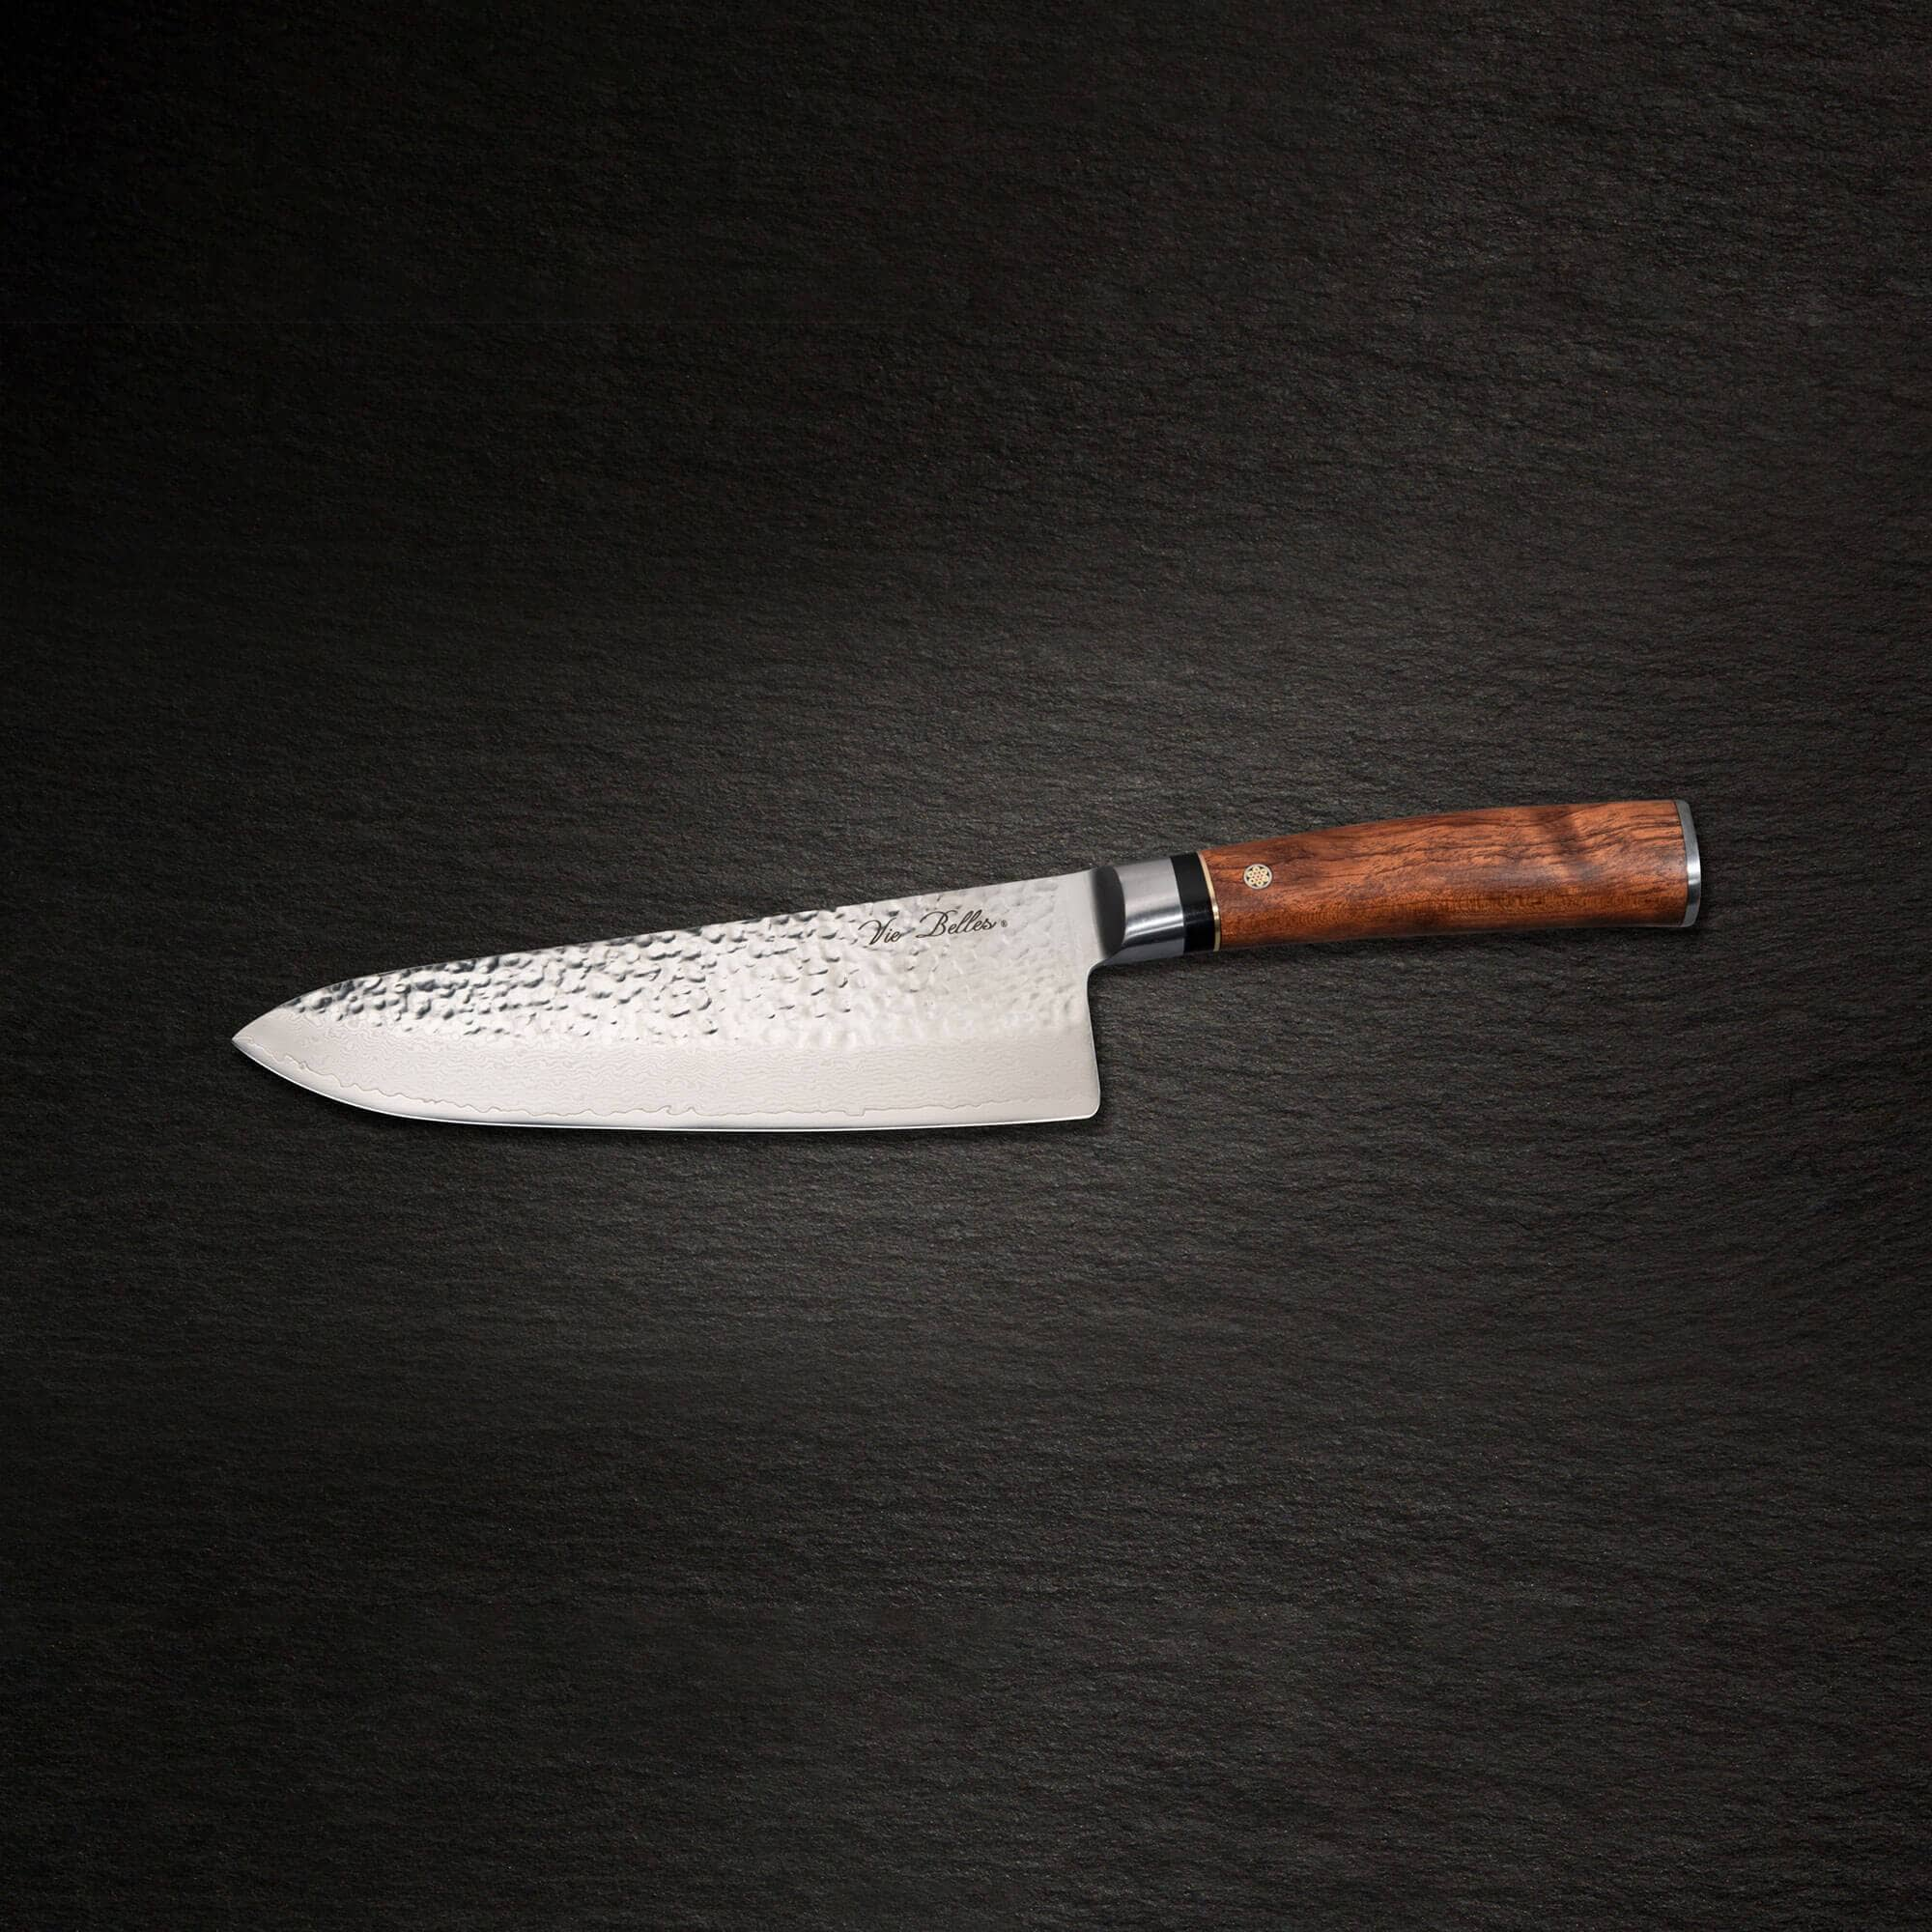 Reserve Chef Knife